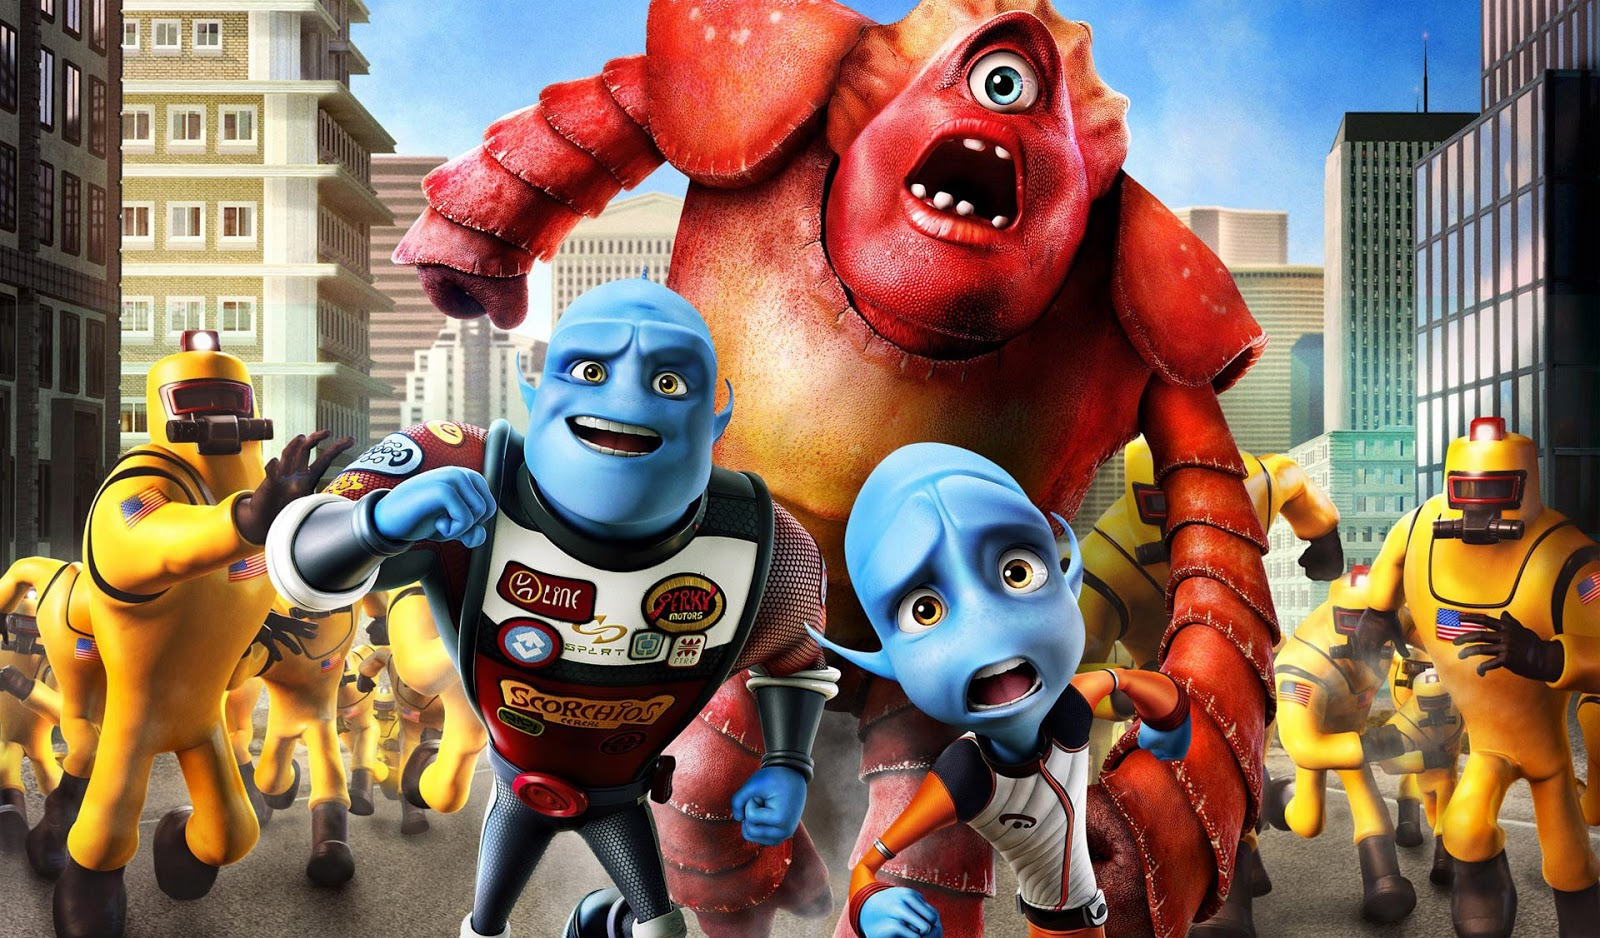 Streaming Watch Escape from Planet Earth Subtitle Indonesia  Download Film Escape from Planet Earth Terbaru Download Video Escape from Planet Earth Subtitle Indonesia Escape from Planet Earth Subtitle Indonesia.MKV.MP4.3GP Iron Man 3 Subtitle Indonesia.MP4